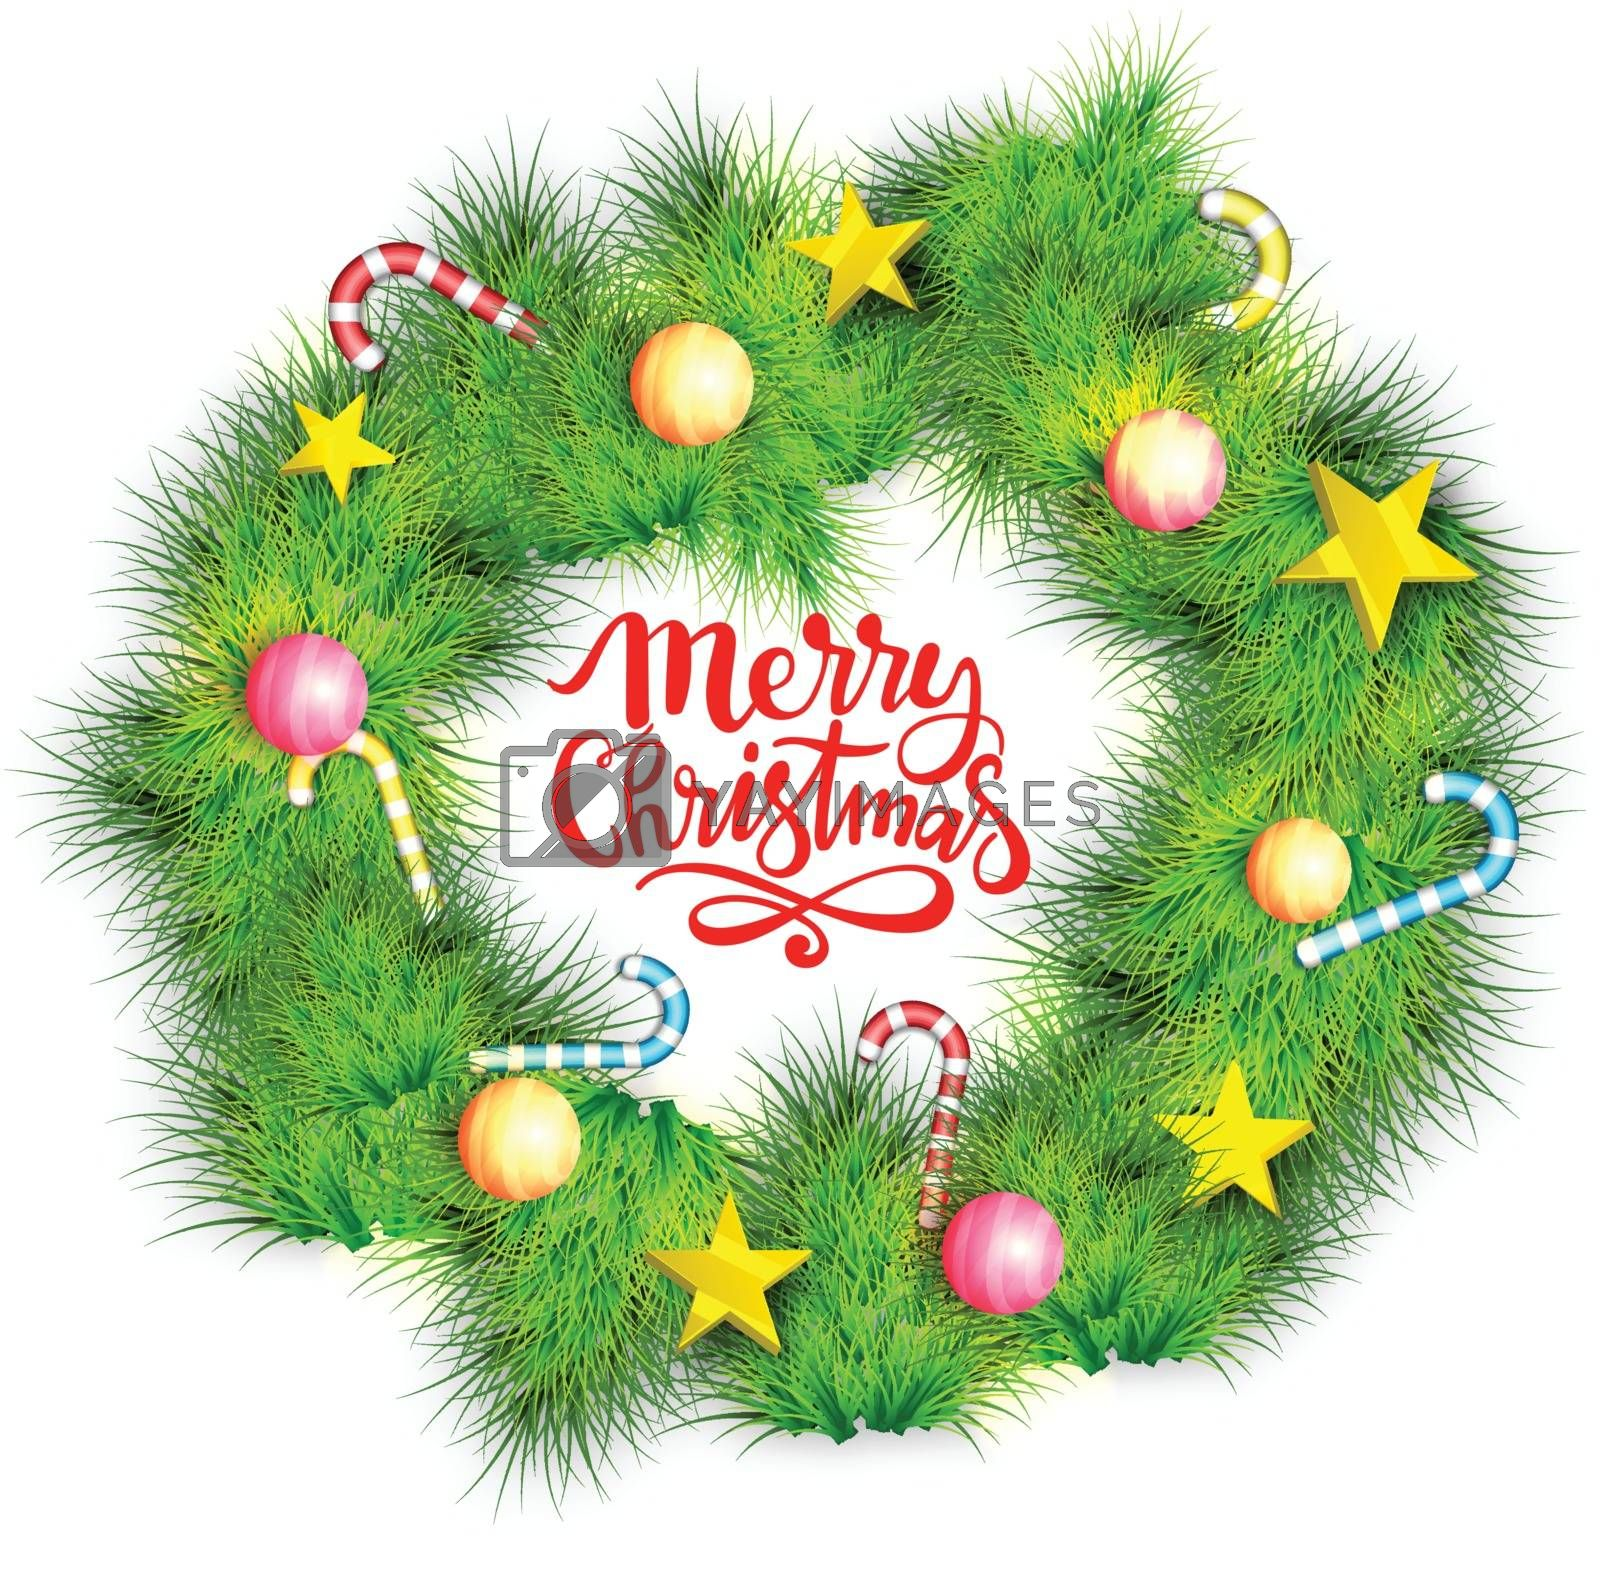 Christmas wreath decorated with glossy balls, golden stars and candy canes.